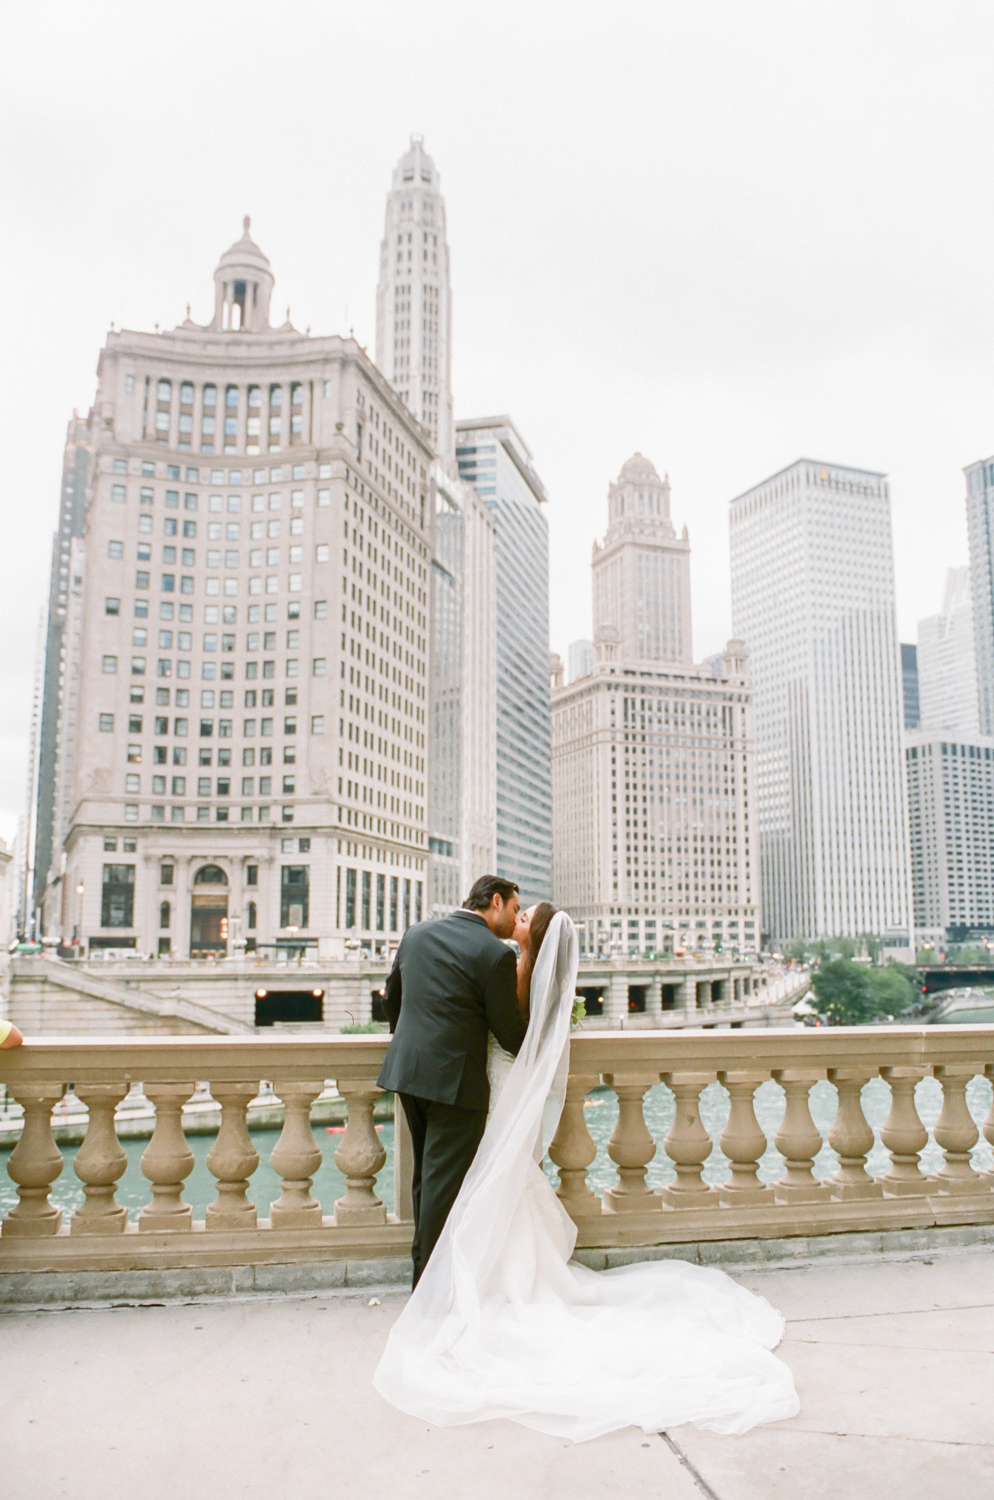 Bride and groom on Michigan Avenue in Chicago, Chicago fine art wedding photography Erica Robnett Photography